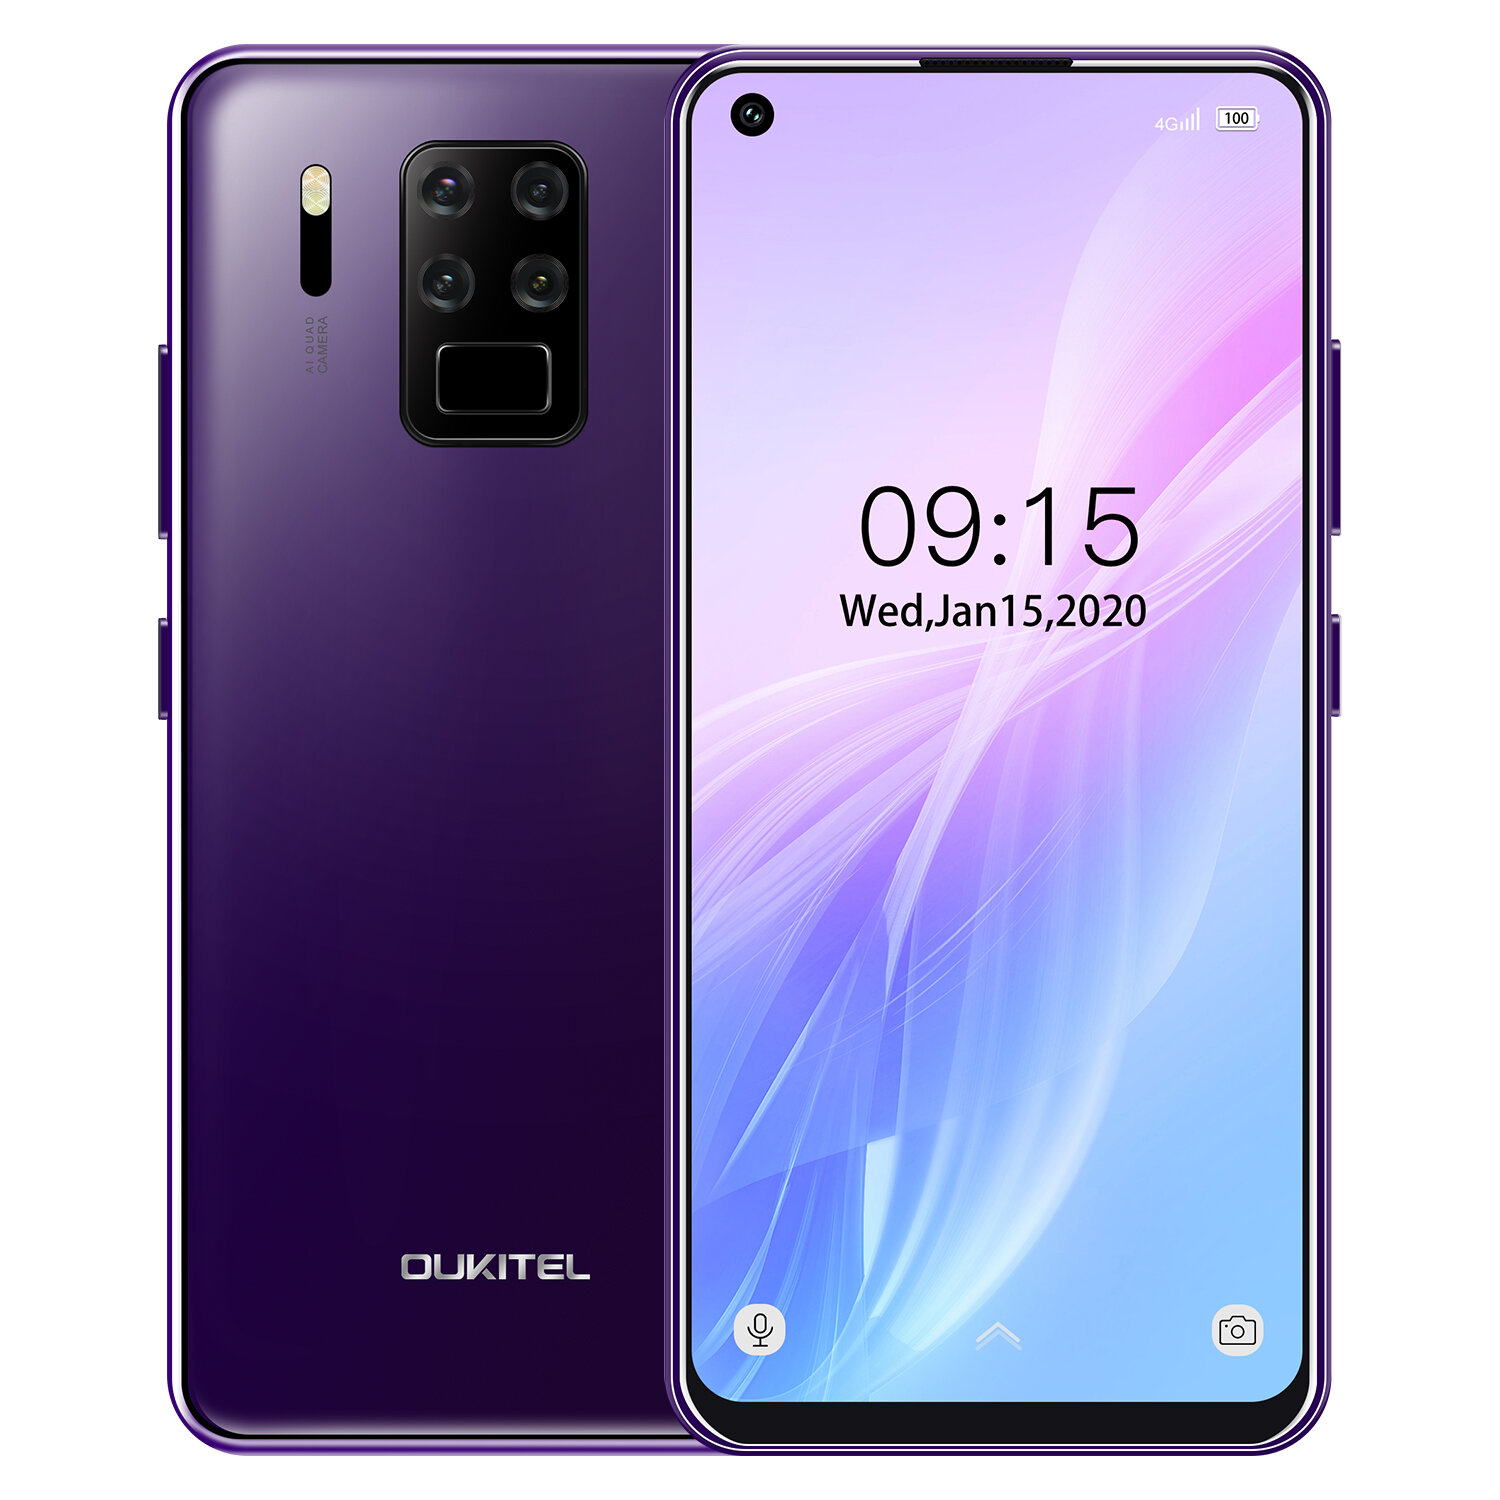 OUKITEL C18 Pro 6.55 inch HD+ 4000mAh Android 9.0 16MP Quad Rear Camera Face Unlock 4GB 64GB Helio P25 4G Smartphone - Purple